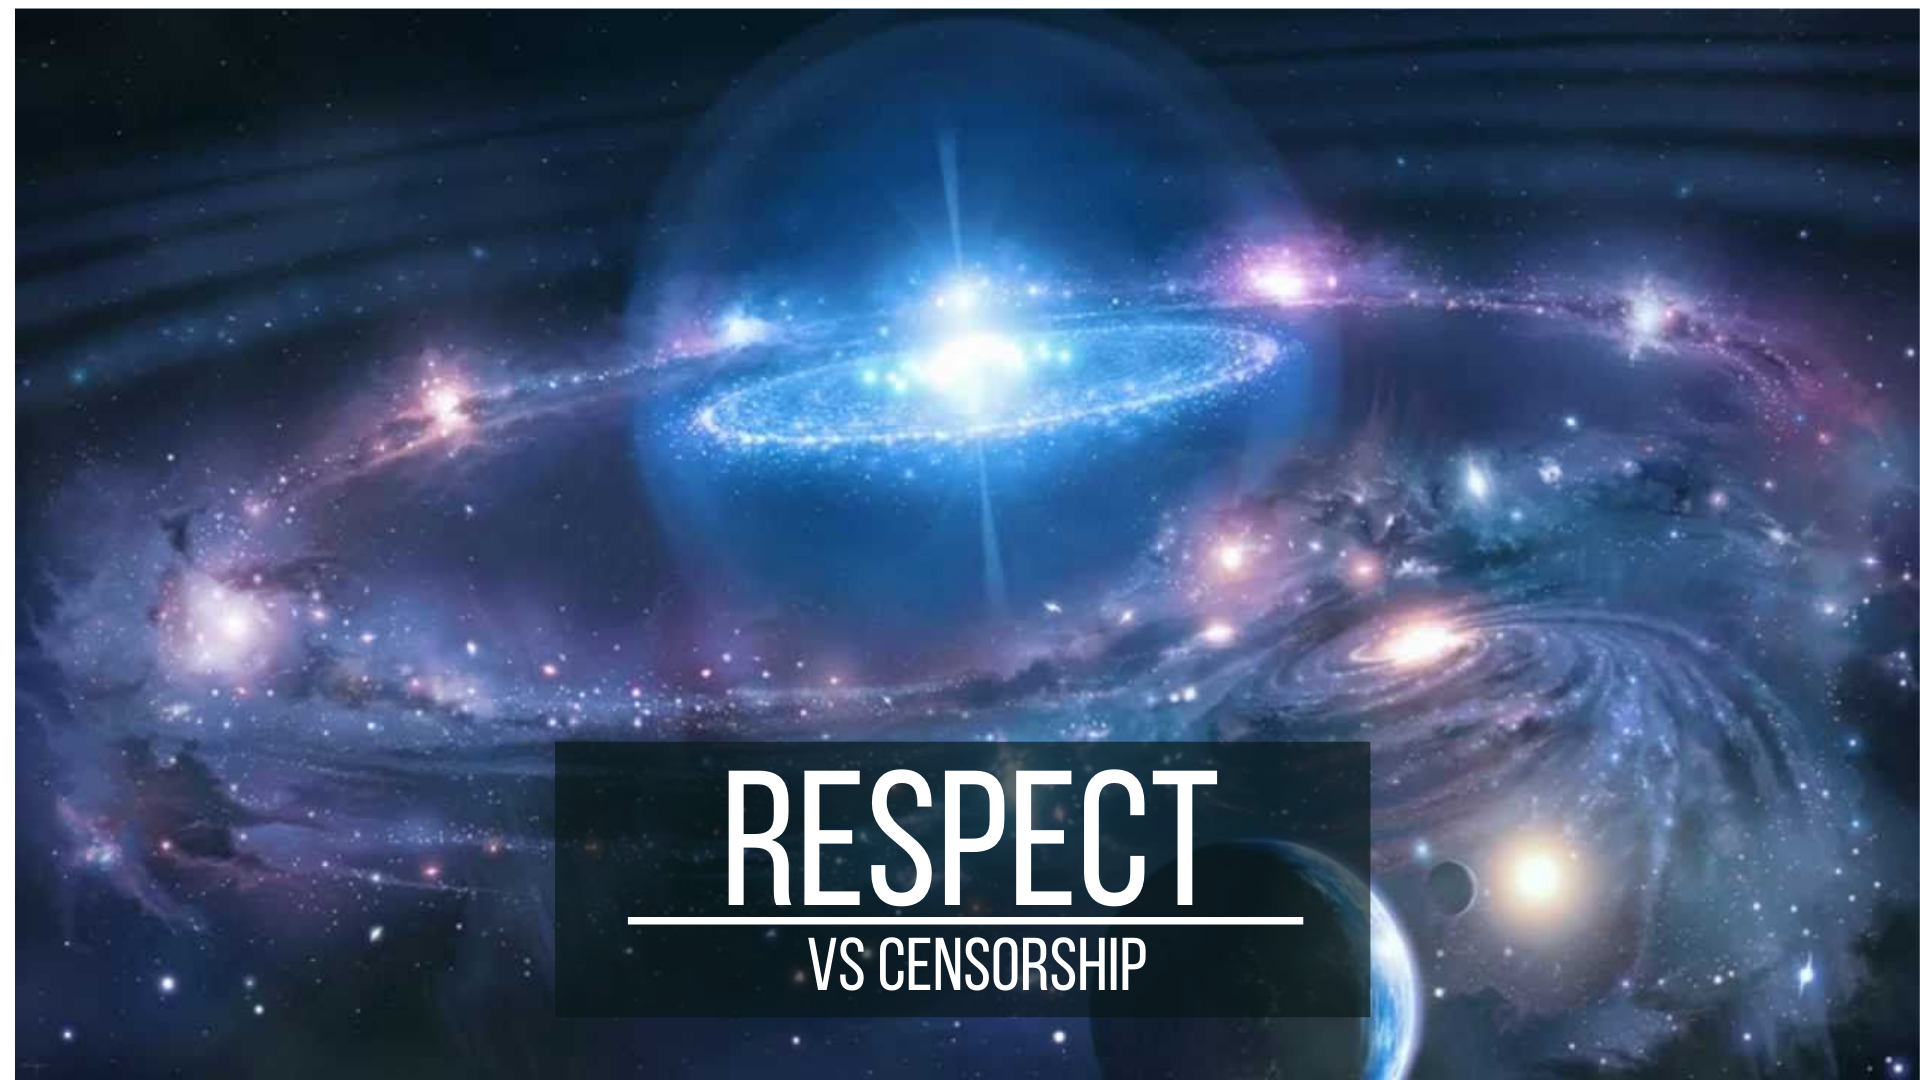 Respect vs Censorship